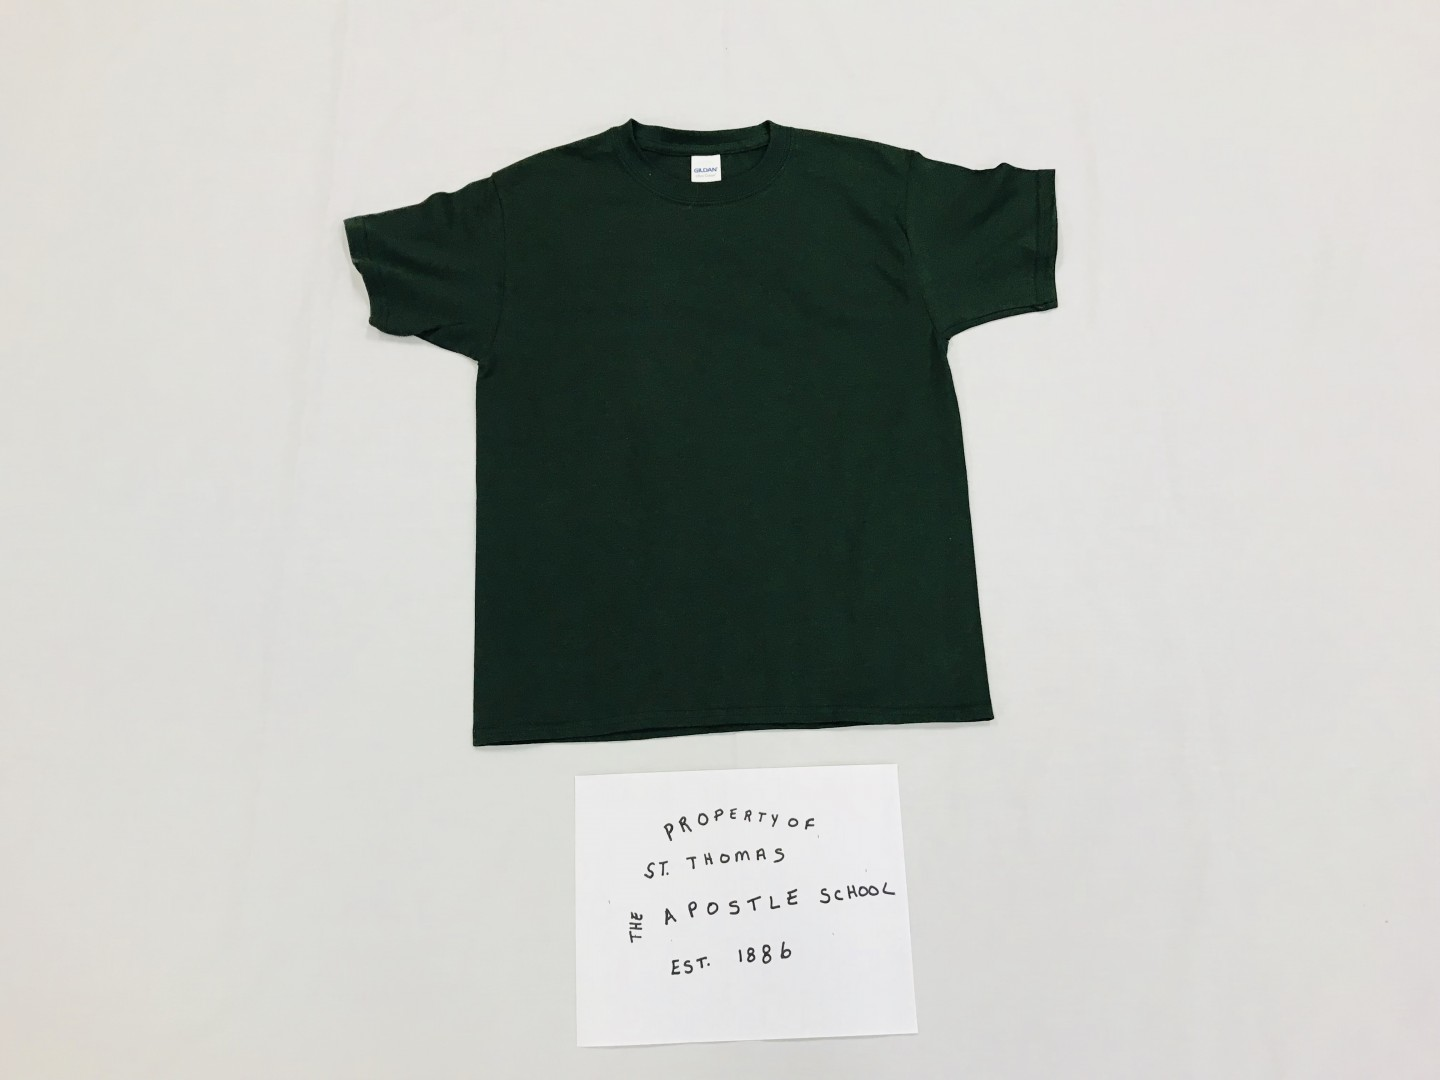 Solid forest green t-shirt with Property of St. Thomas the Apostle School logo